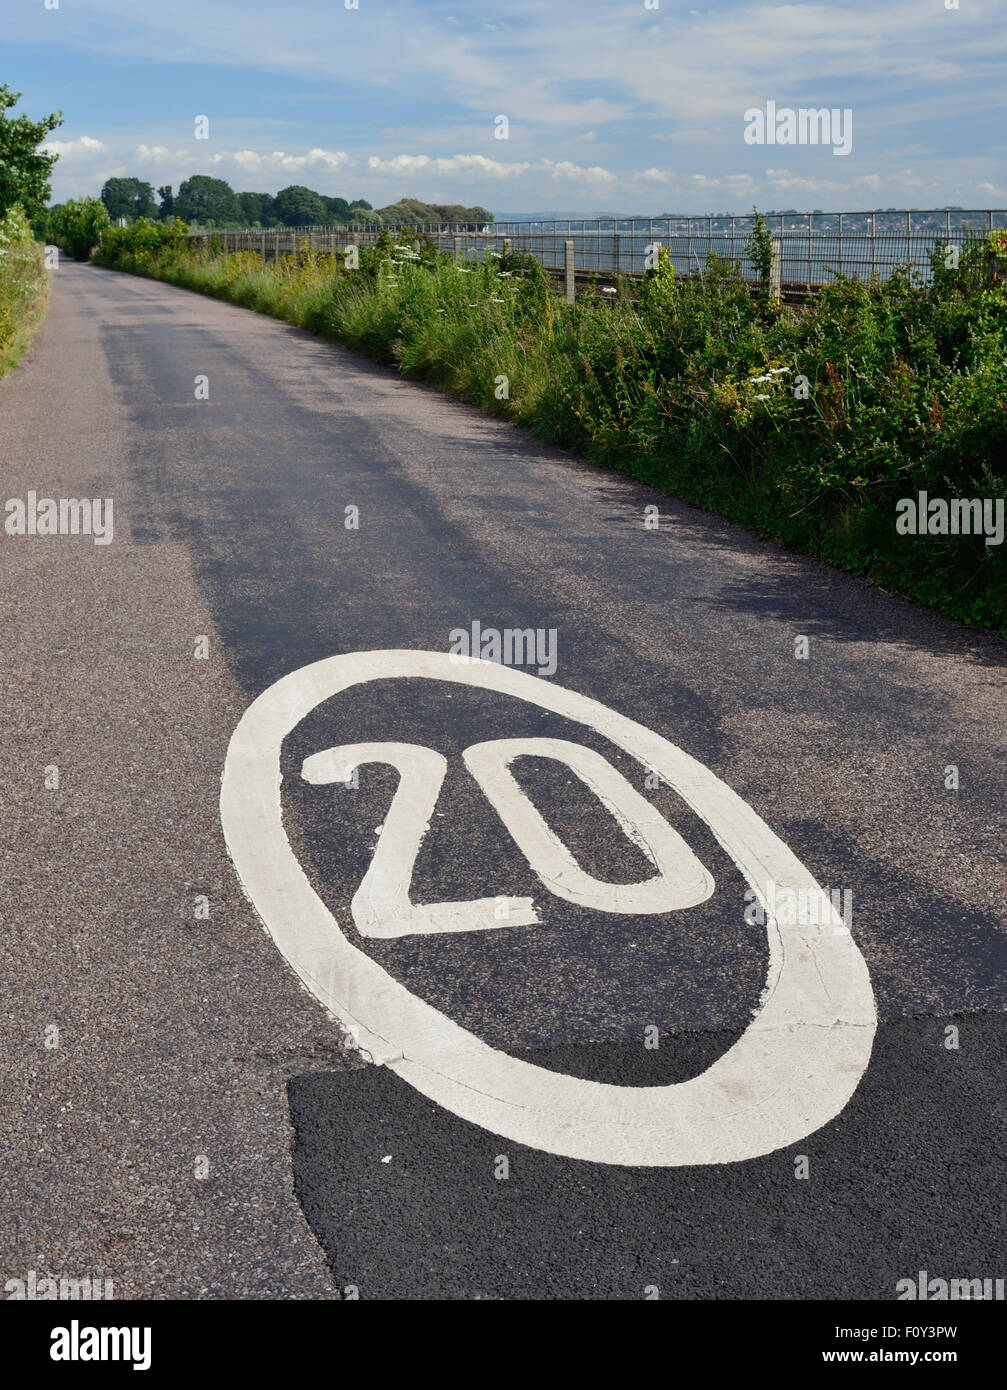 20 mph speed limit sign on minor country road. - Stock Image